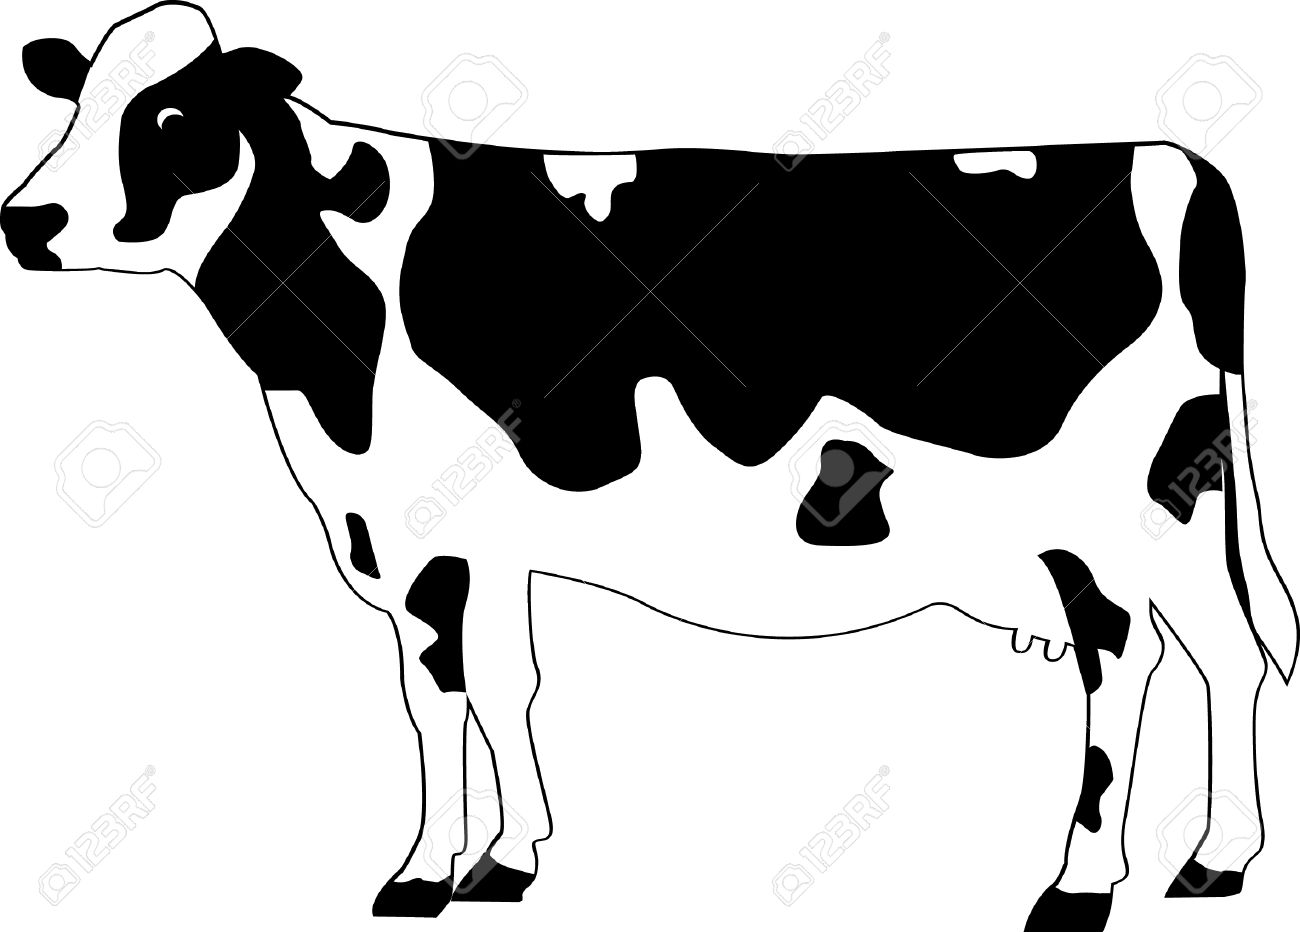 Free clipart farm animals black and white cow graphic transparent download Black And White Cow Clipart | Free download best Black And ... graphic transparent download